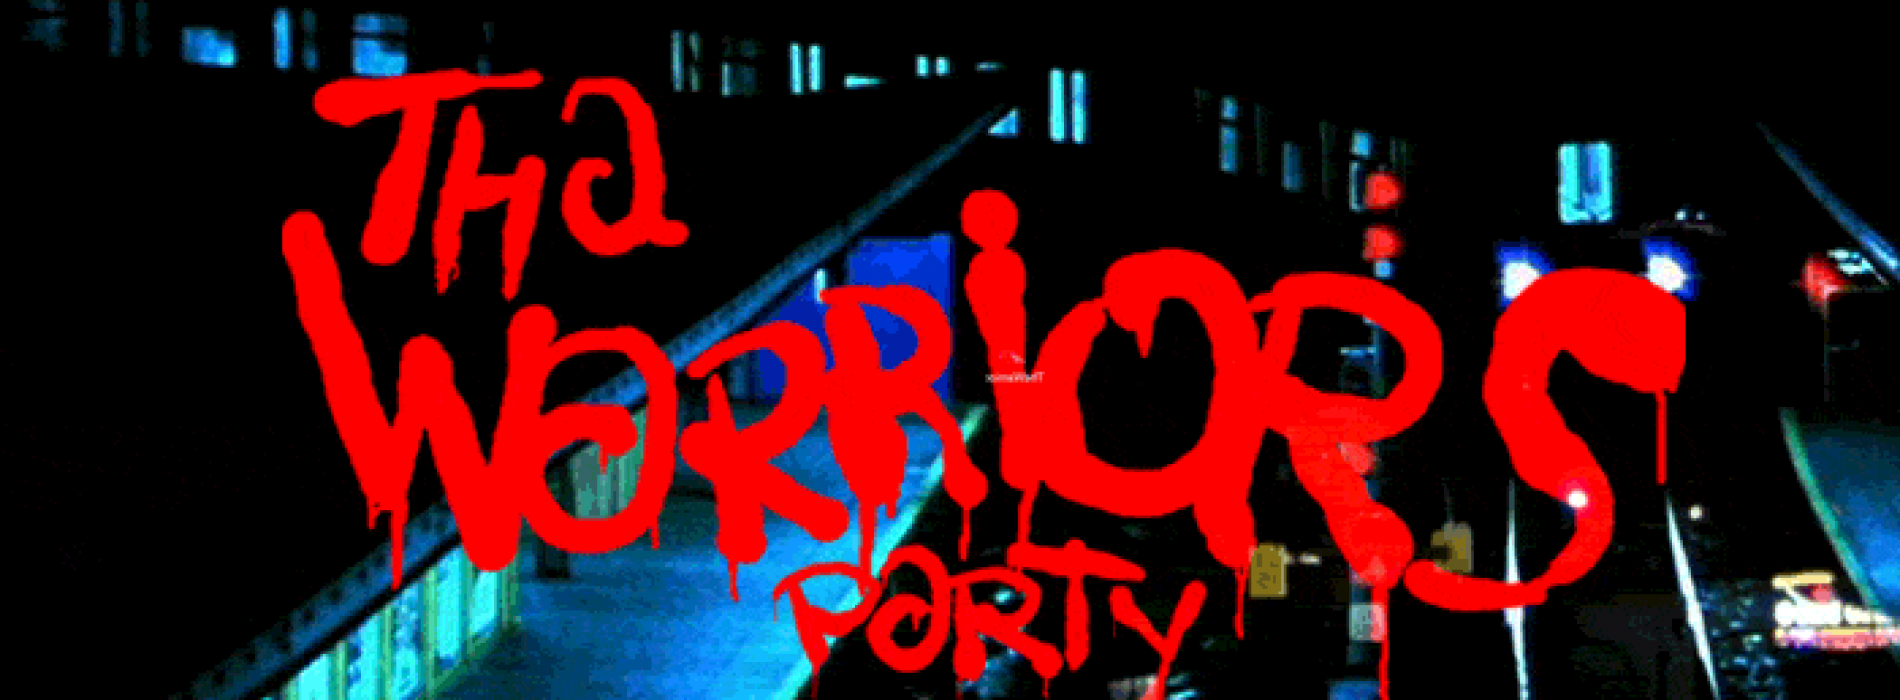 Android icon lovers, come out to play-ay! You're invited to Tha Warriors Party!